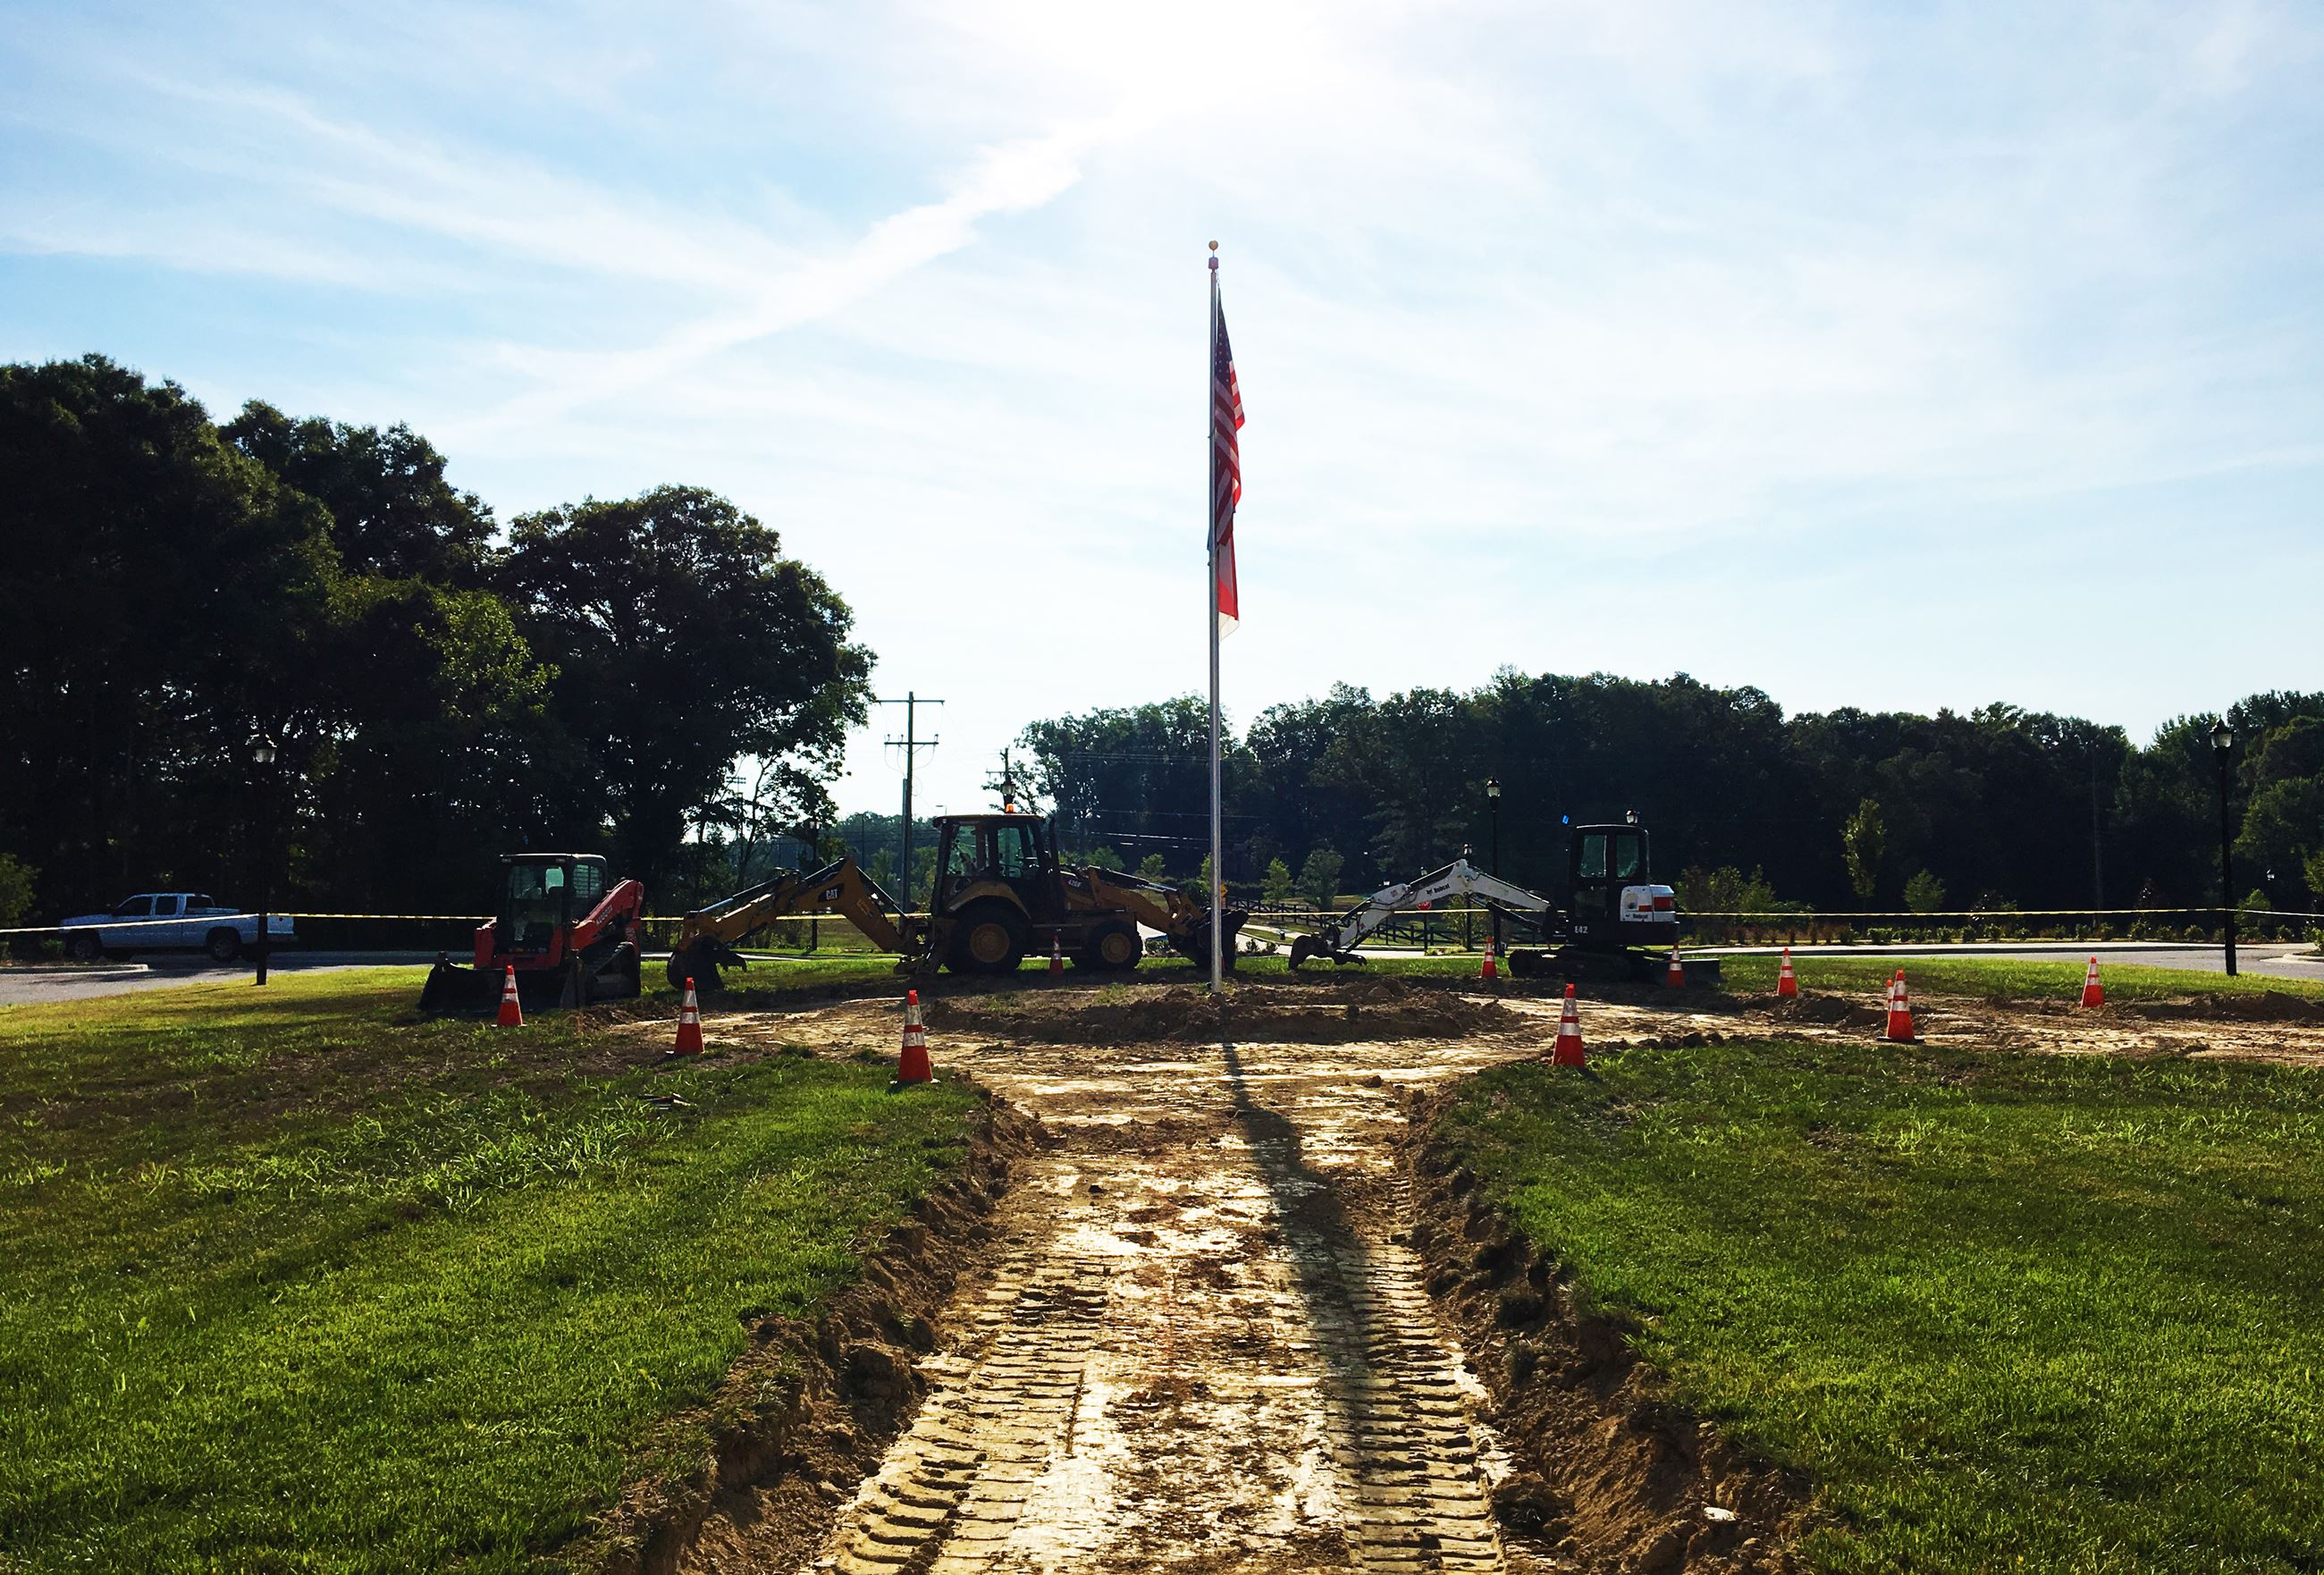 The beginning of the Indian Trail Veterans Memorial Garden shown from groundlevel.